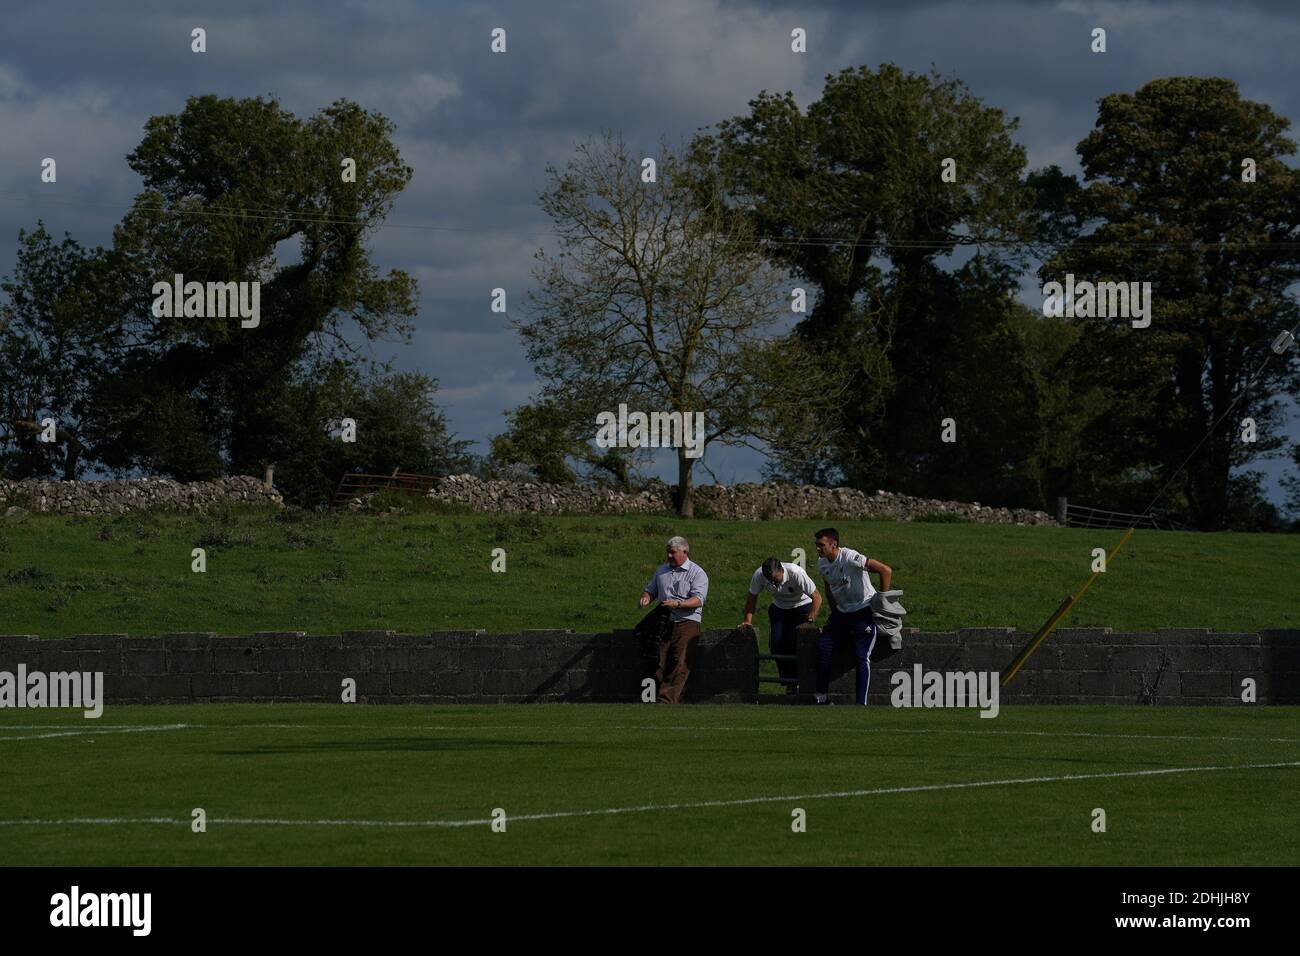 Fans Stand Beside The Playing Pitch Of The Roscommon District Football League Challenge Cup Final Loch arbhach) is a freshwater lake in the northwest of ireland. alamy